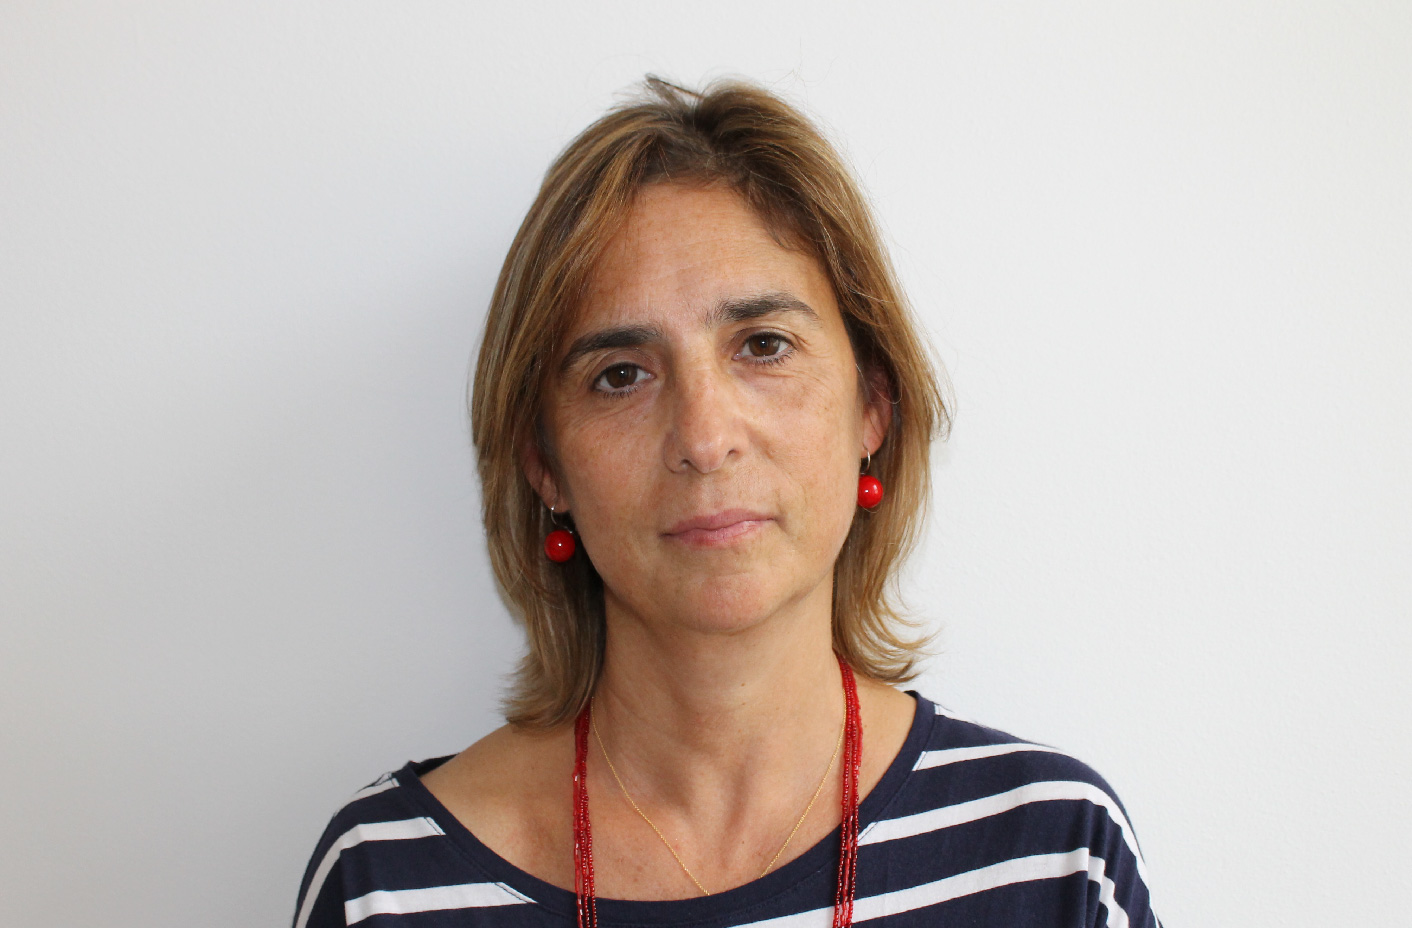 Photo of Ana Isabel Amaro Gonçalves Domingos